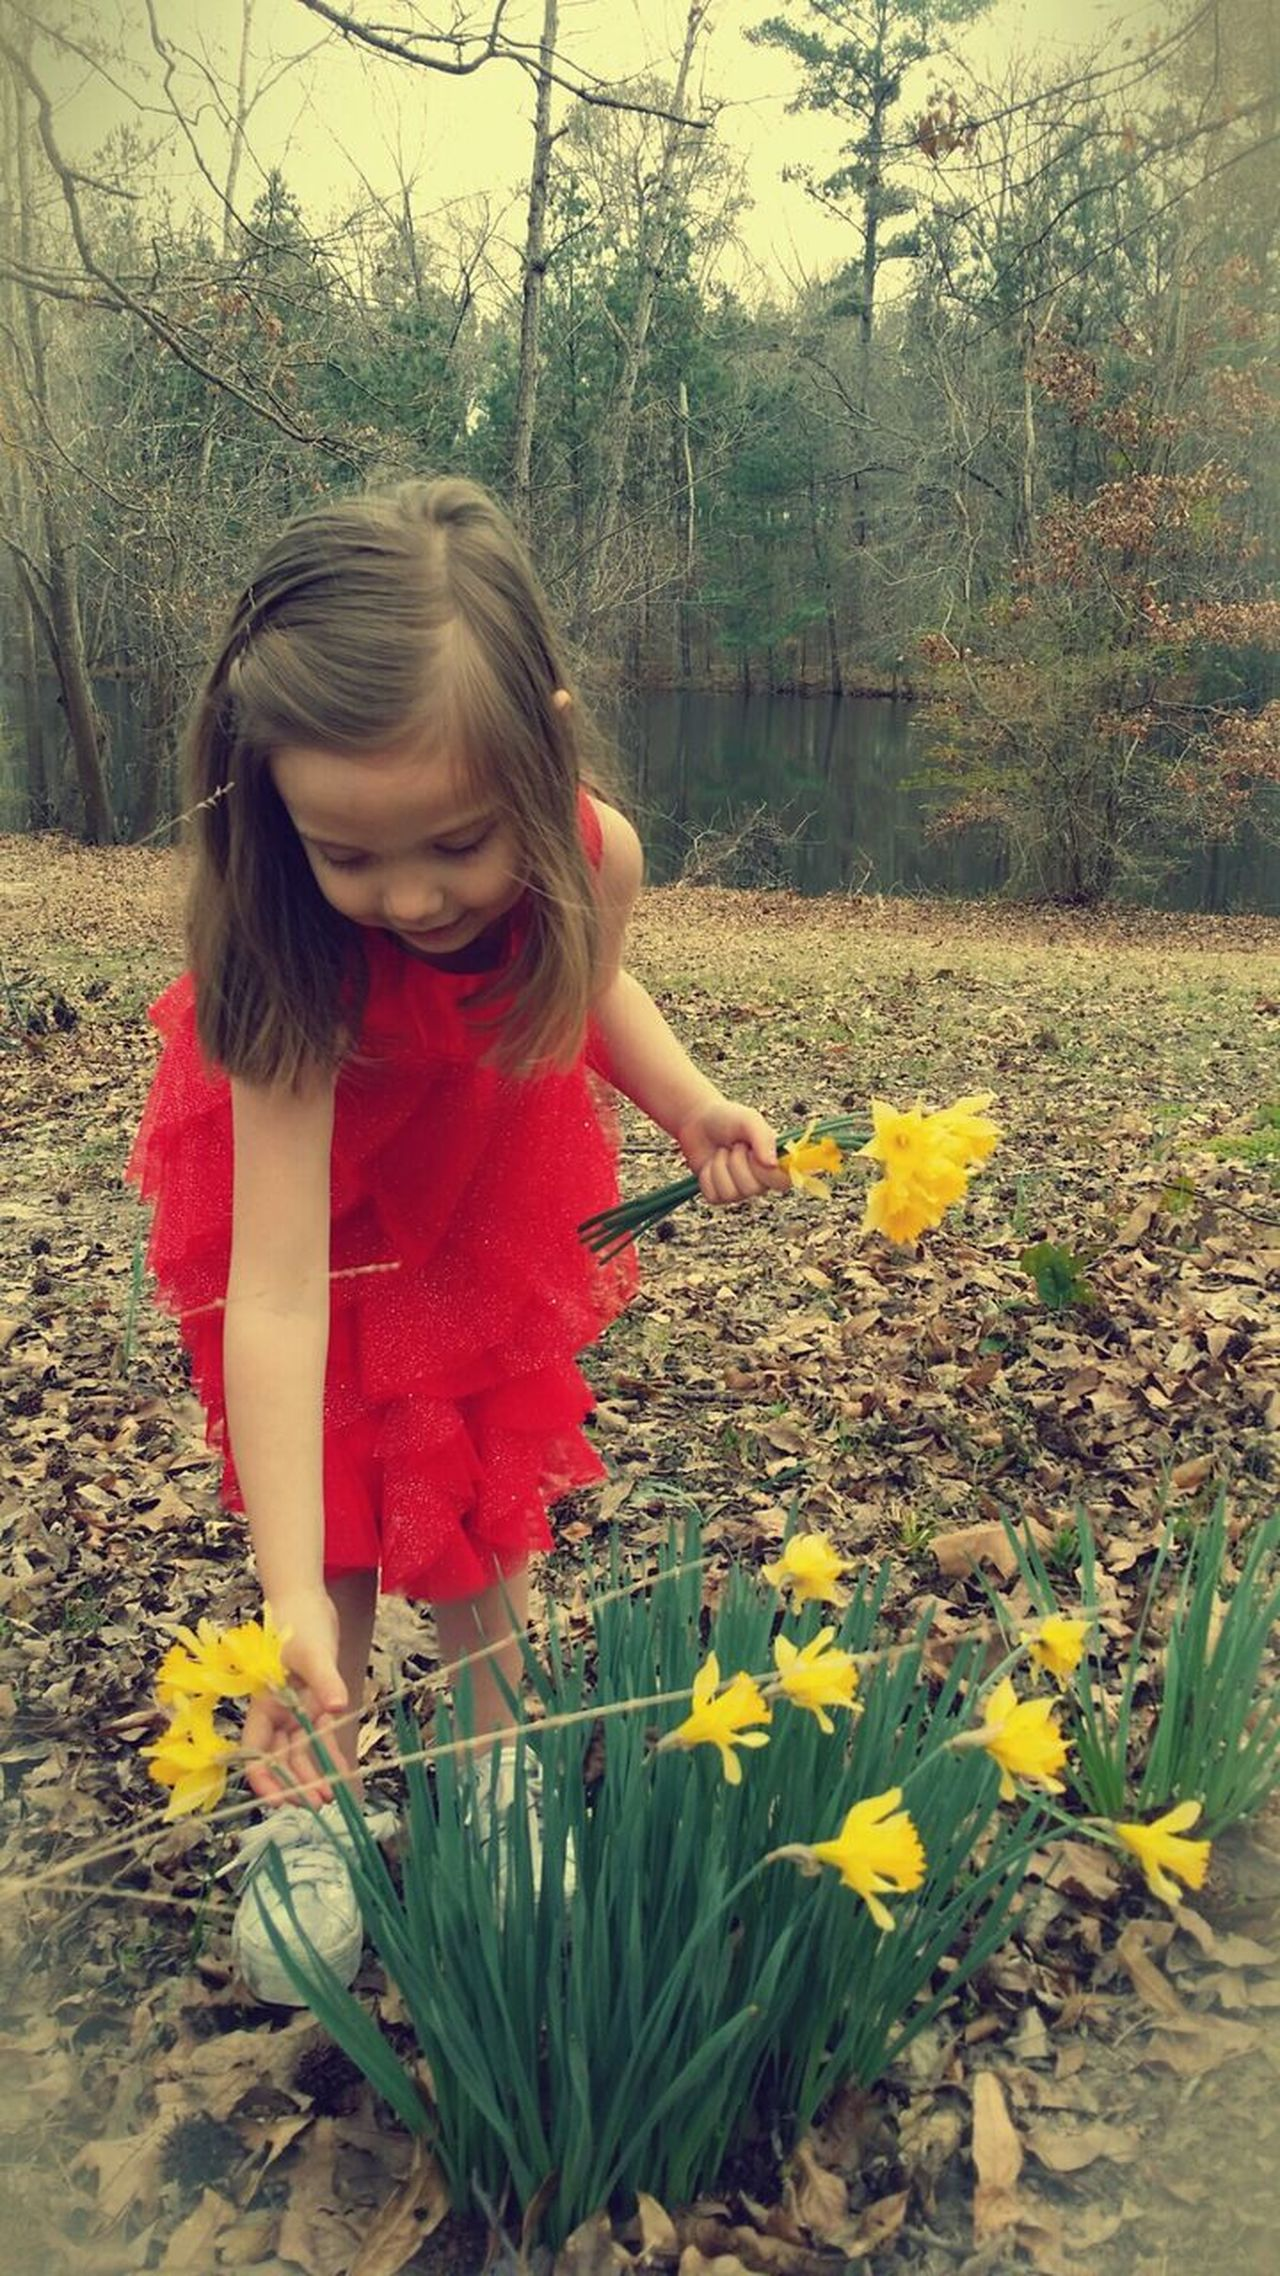 Red Dress Girl Picking Flowers  Pretty Happy Yellow Flowers Beauty Life In Motion